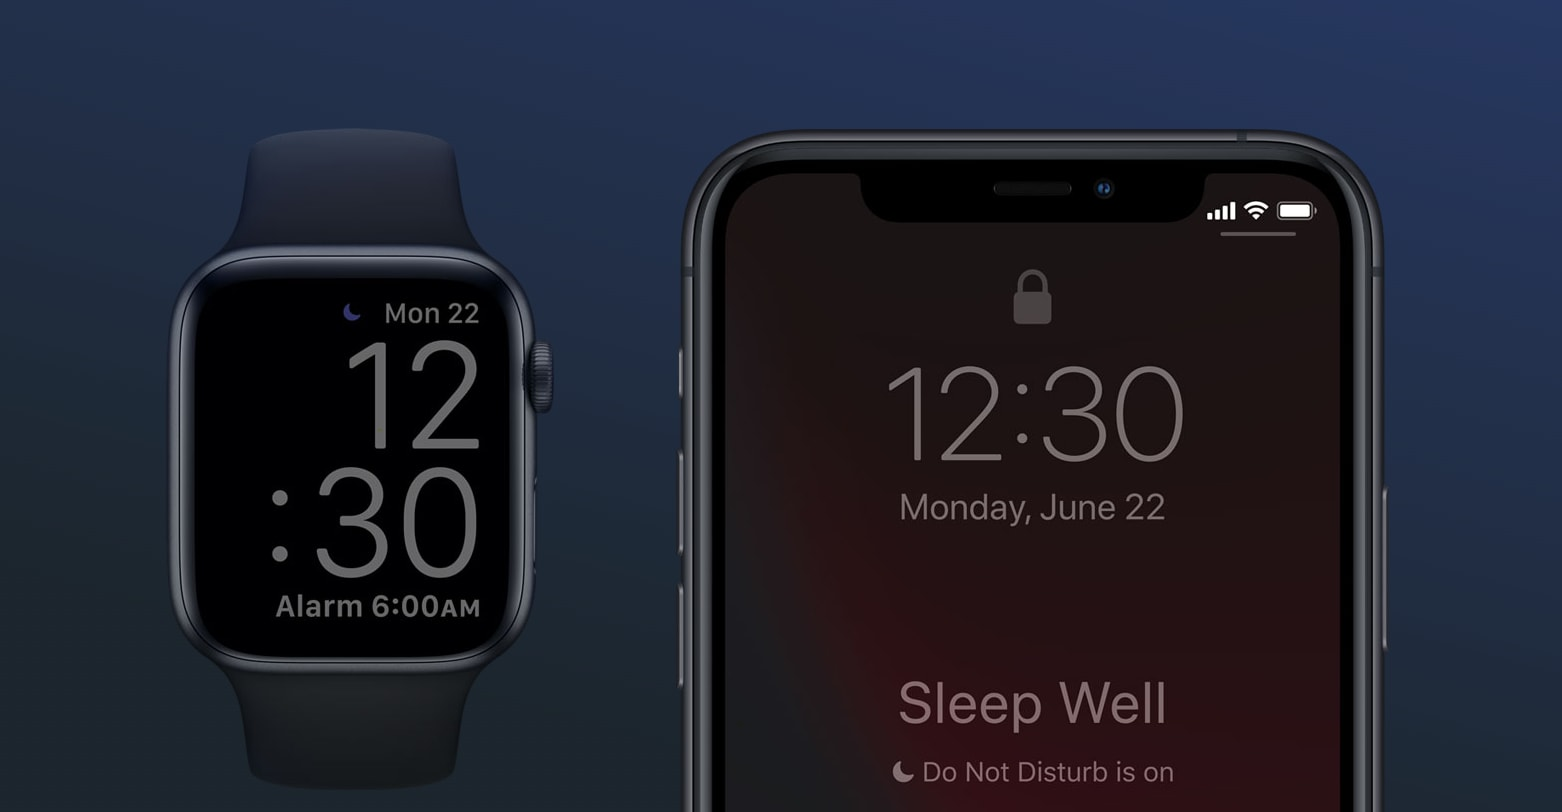 apple-watchos-7-available-for-public-beta-testing-now-20200810-5